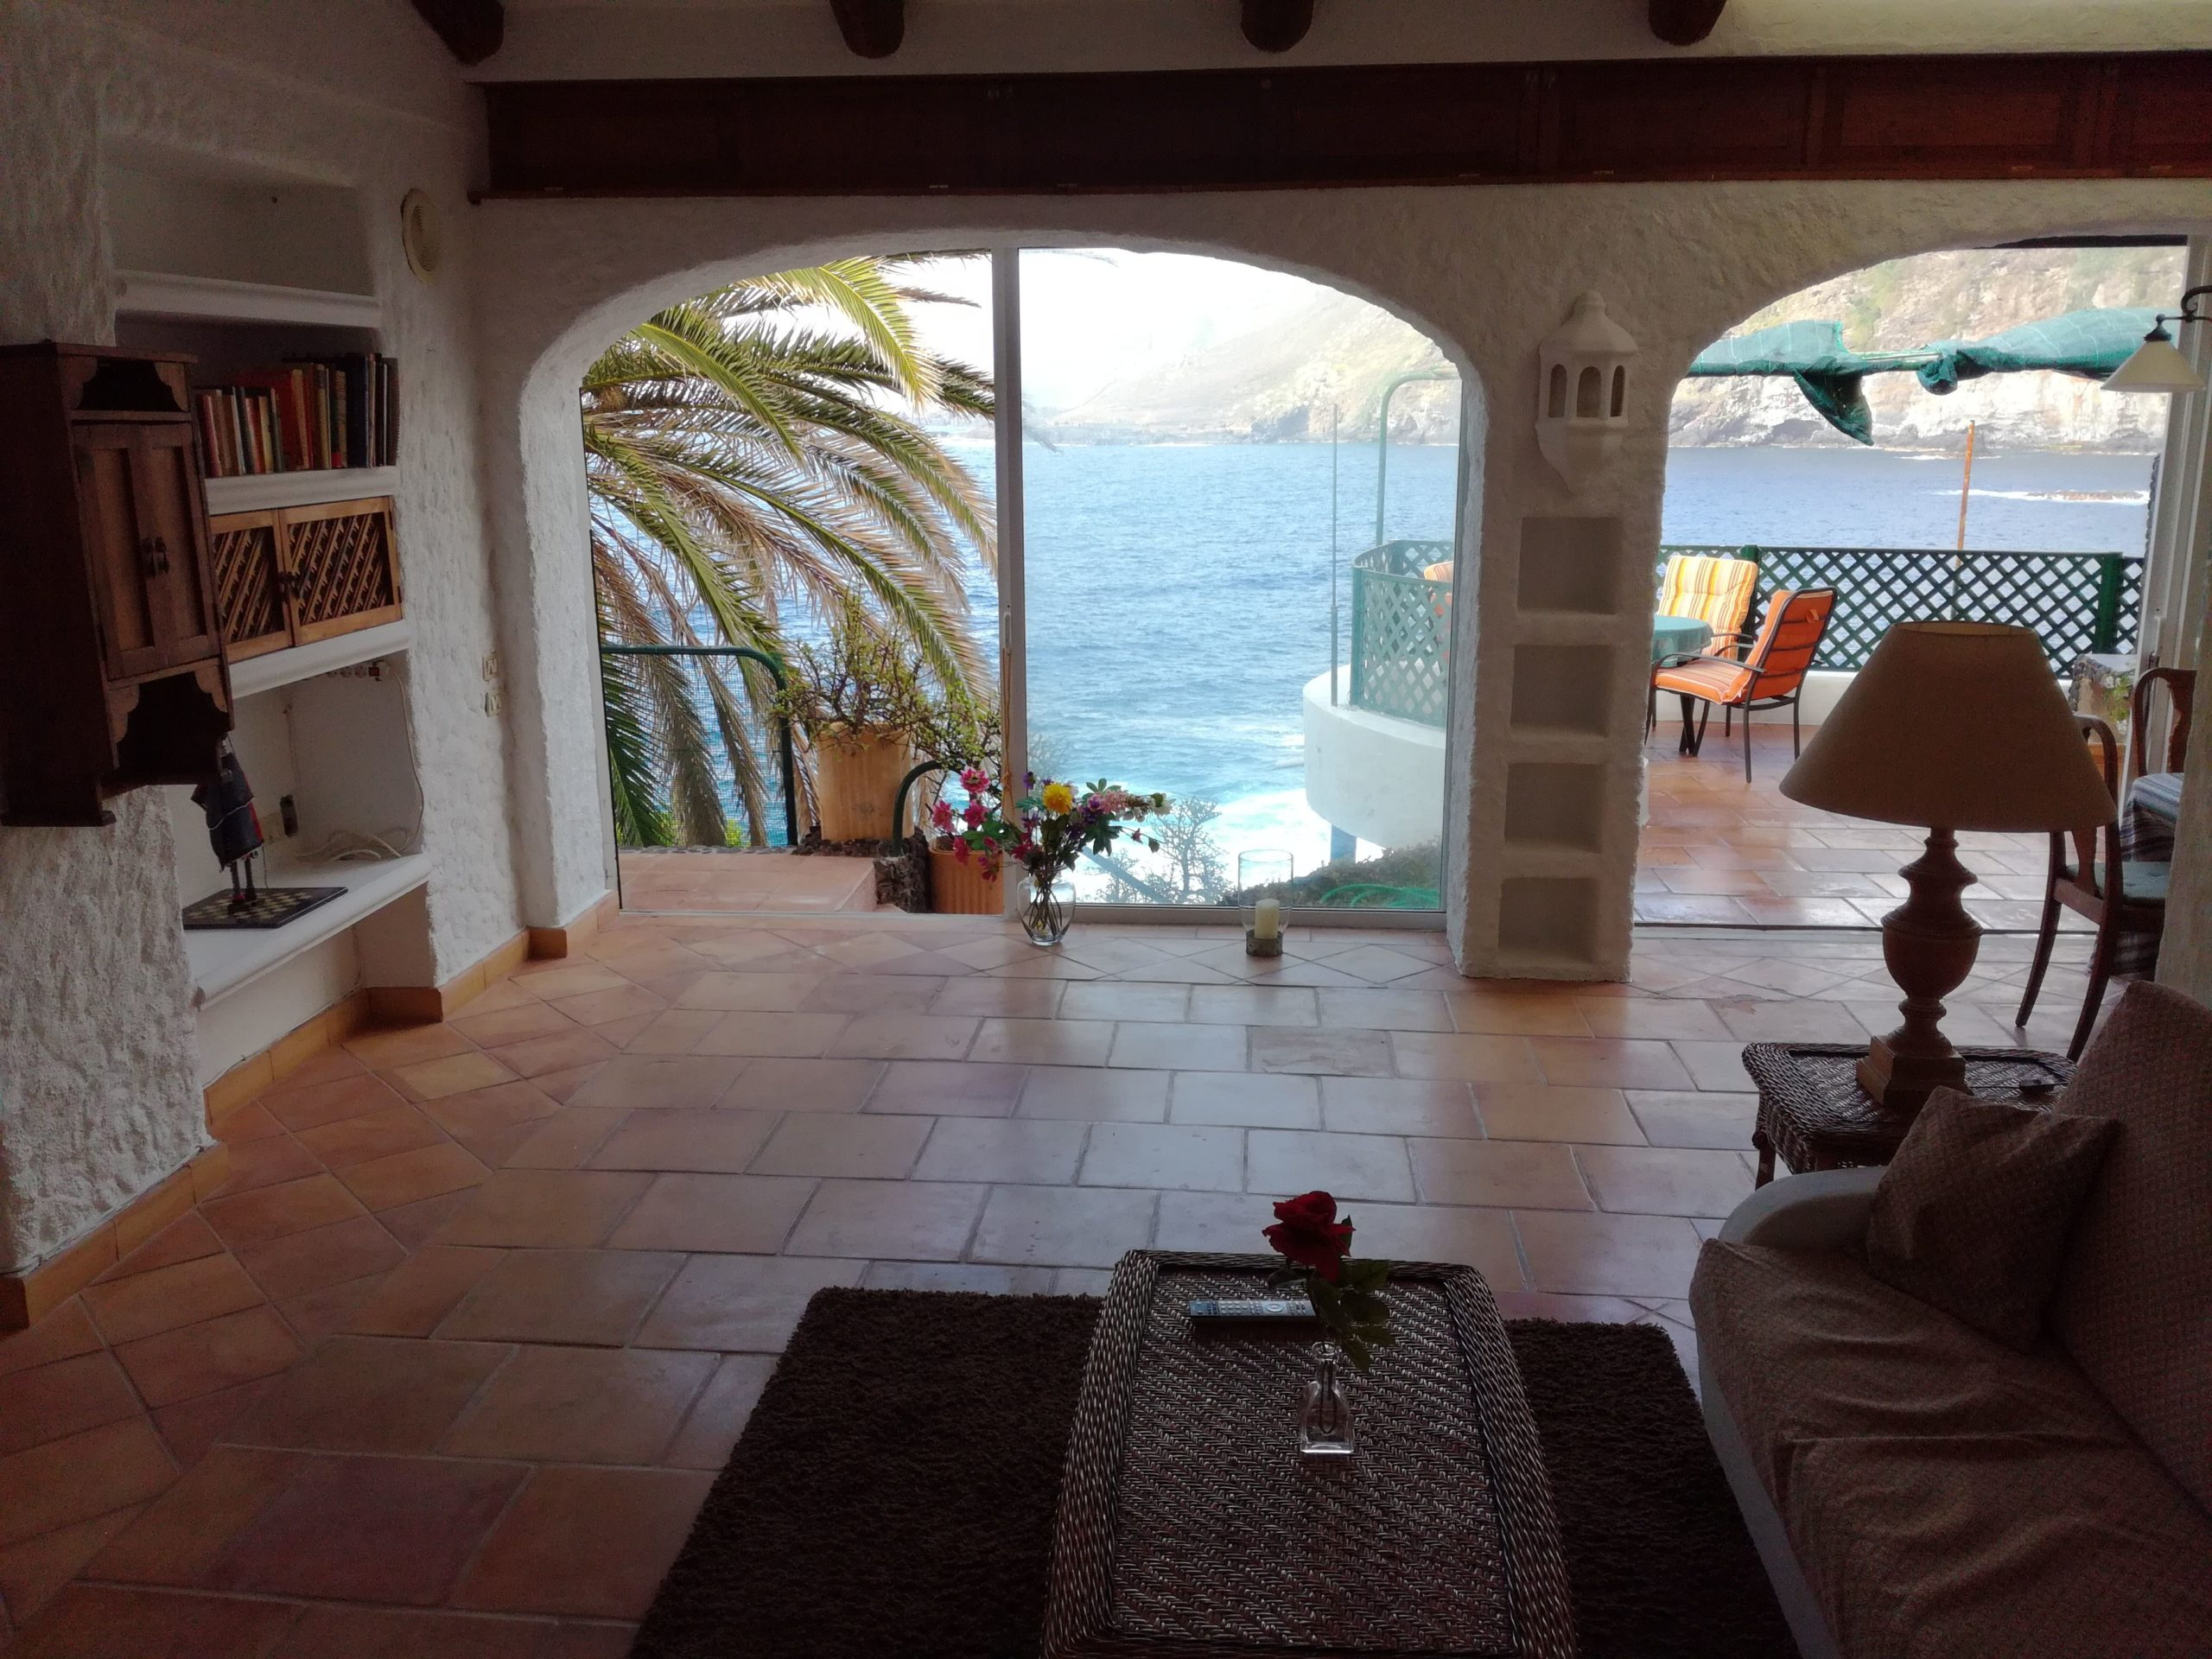 Holiday-Home-Directly-on-the-Sea-Tenerife-5